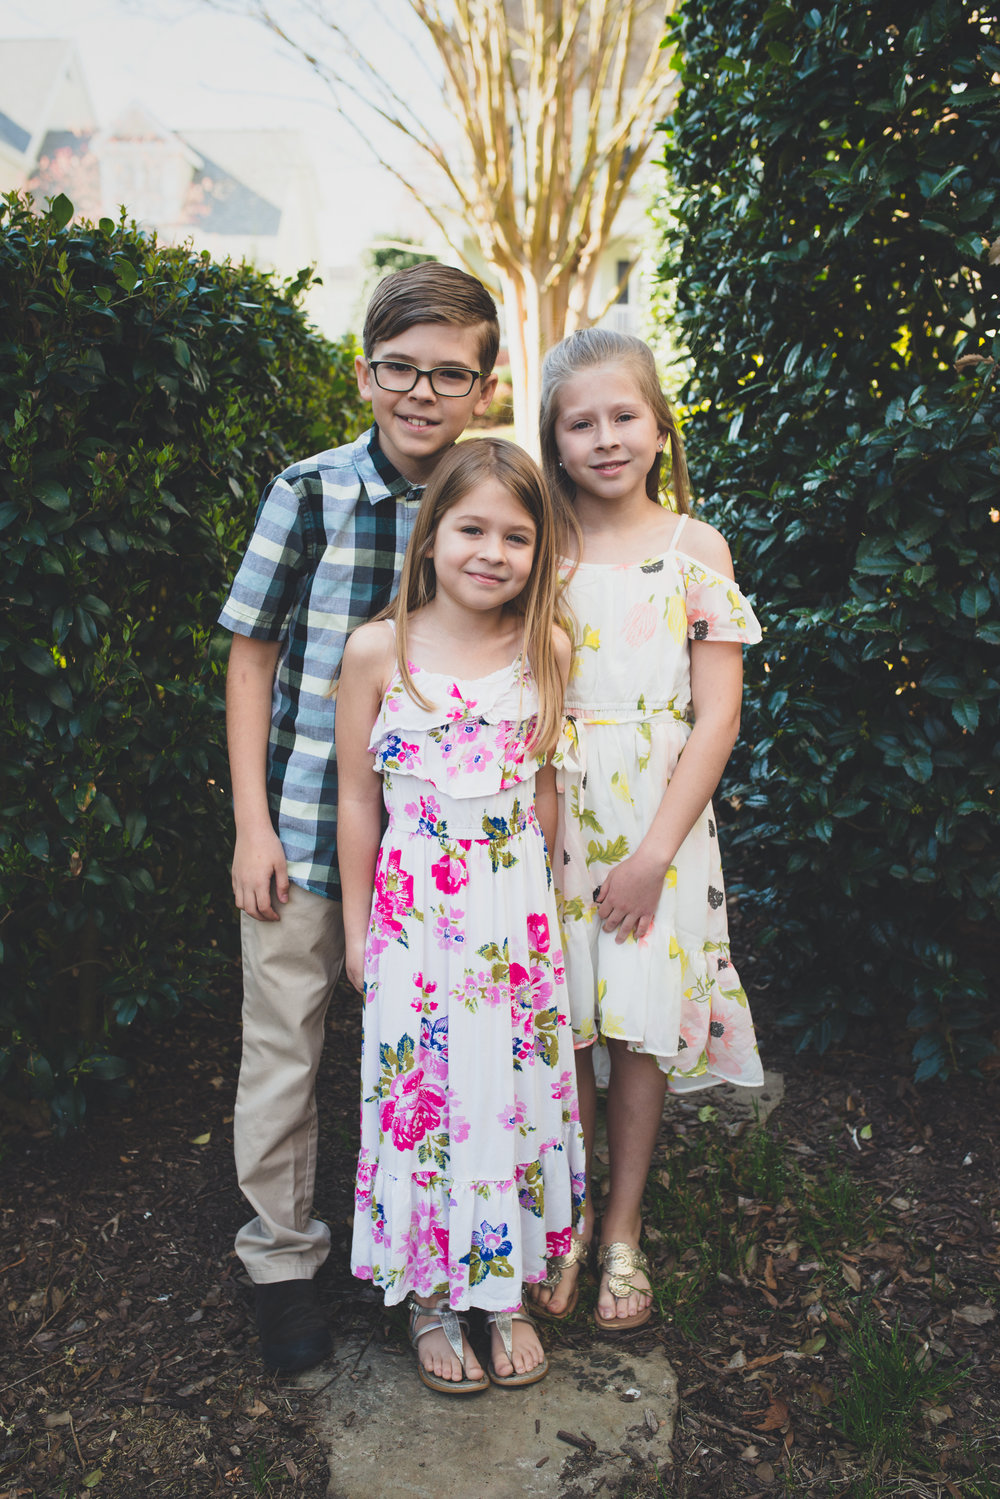 family-photography-cary-raleigh-NC-1.jpg